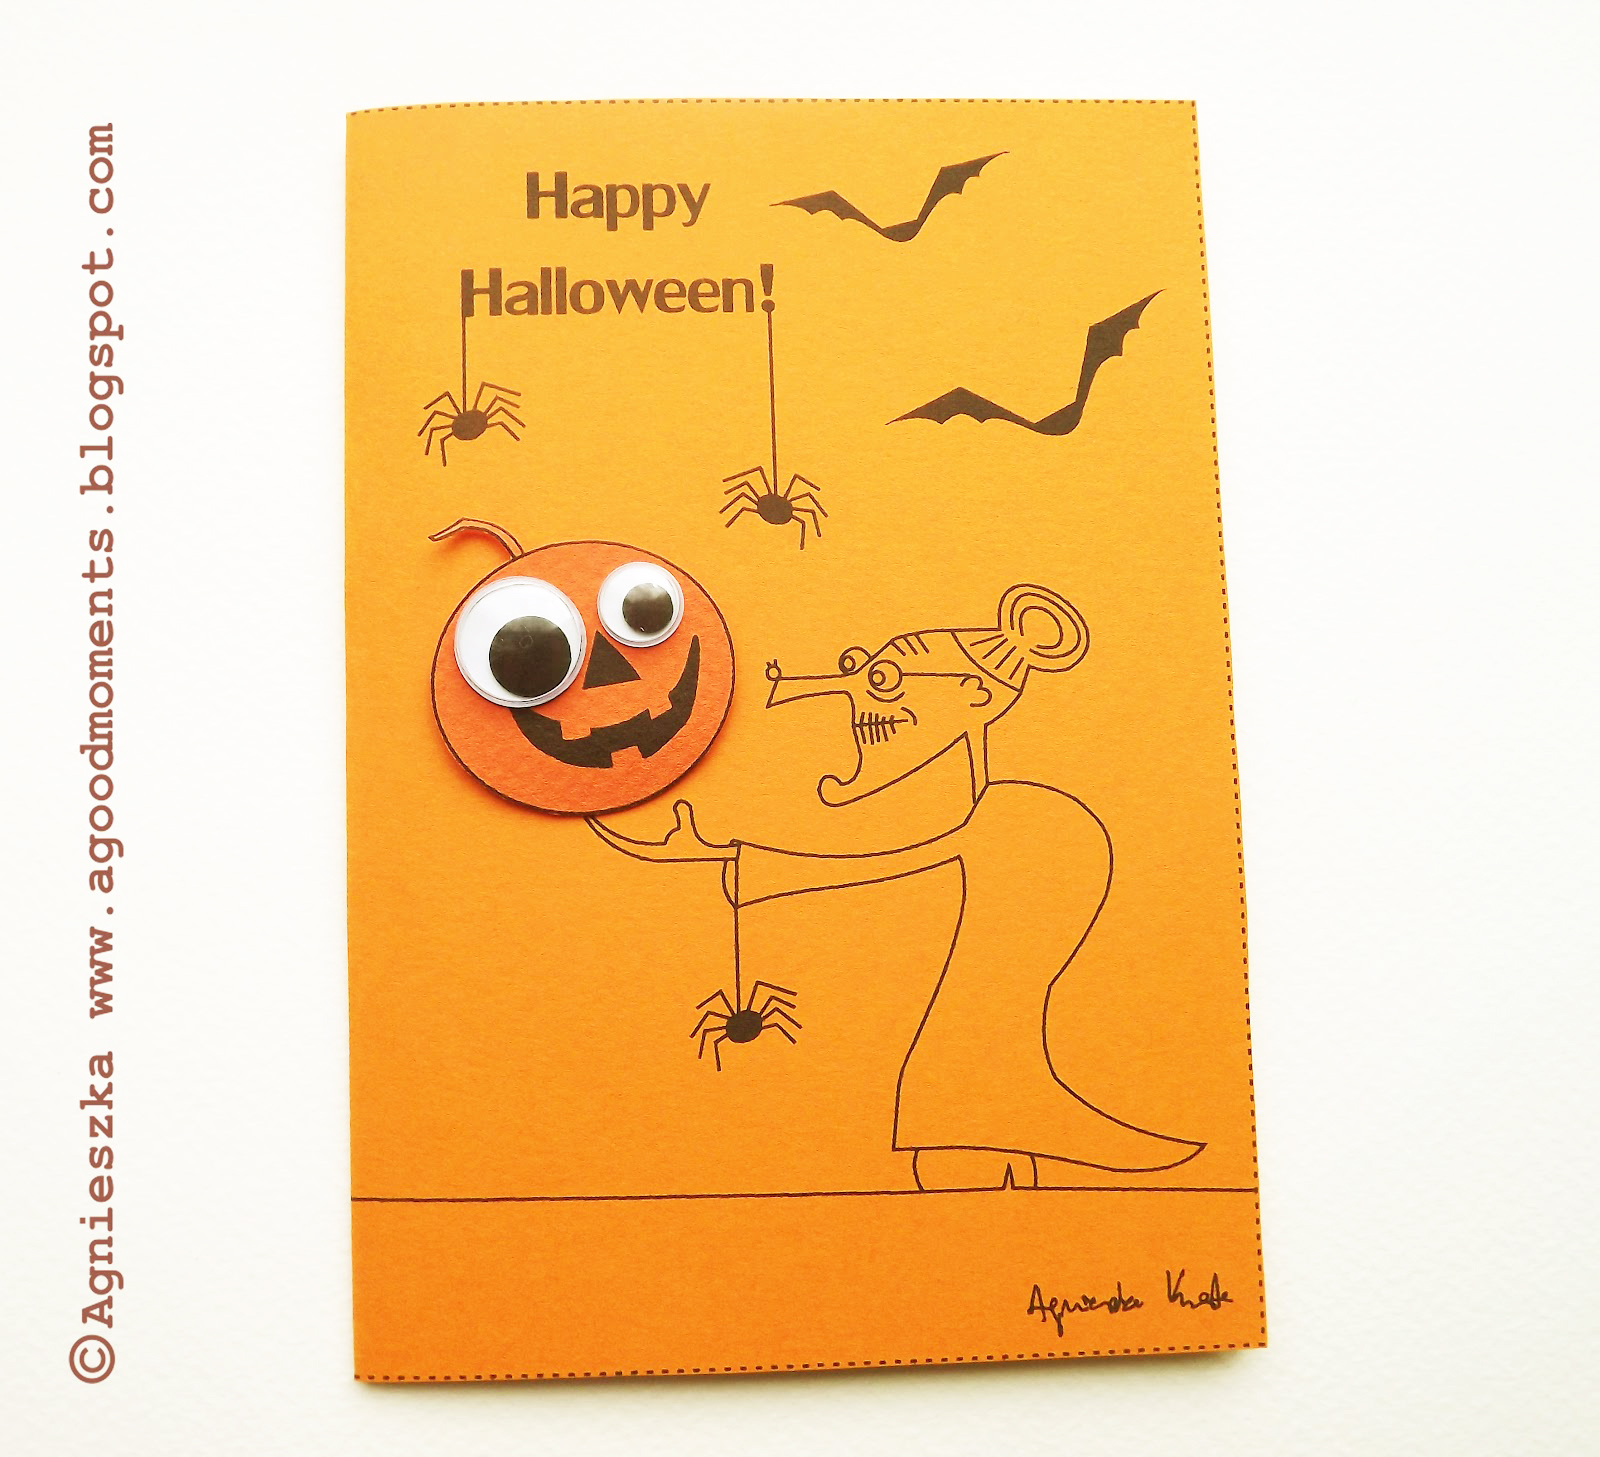 Good Moments Funny Birthday Card Ͽ�mieszna Kartka Urodzinowa: Good Moments: Funny Halloween Witch Card / Śmieszna Kartka